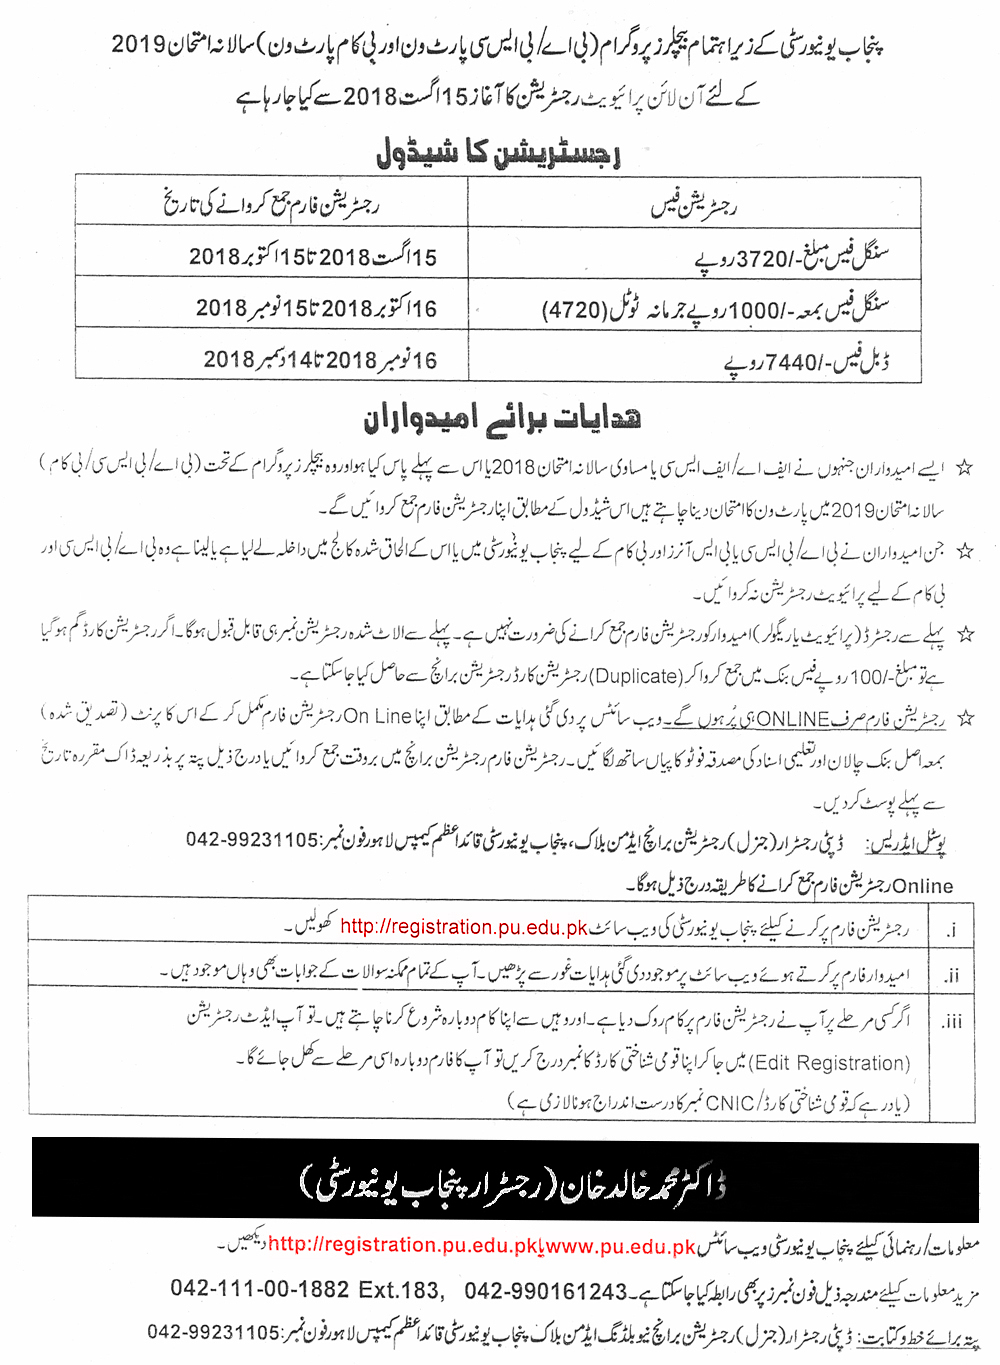 PU Lahore Online Registration of Private Candidates for Annual Examination 2019